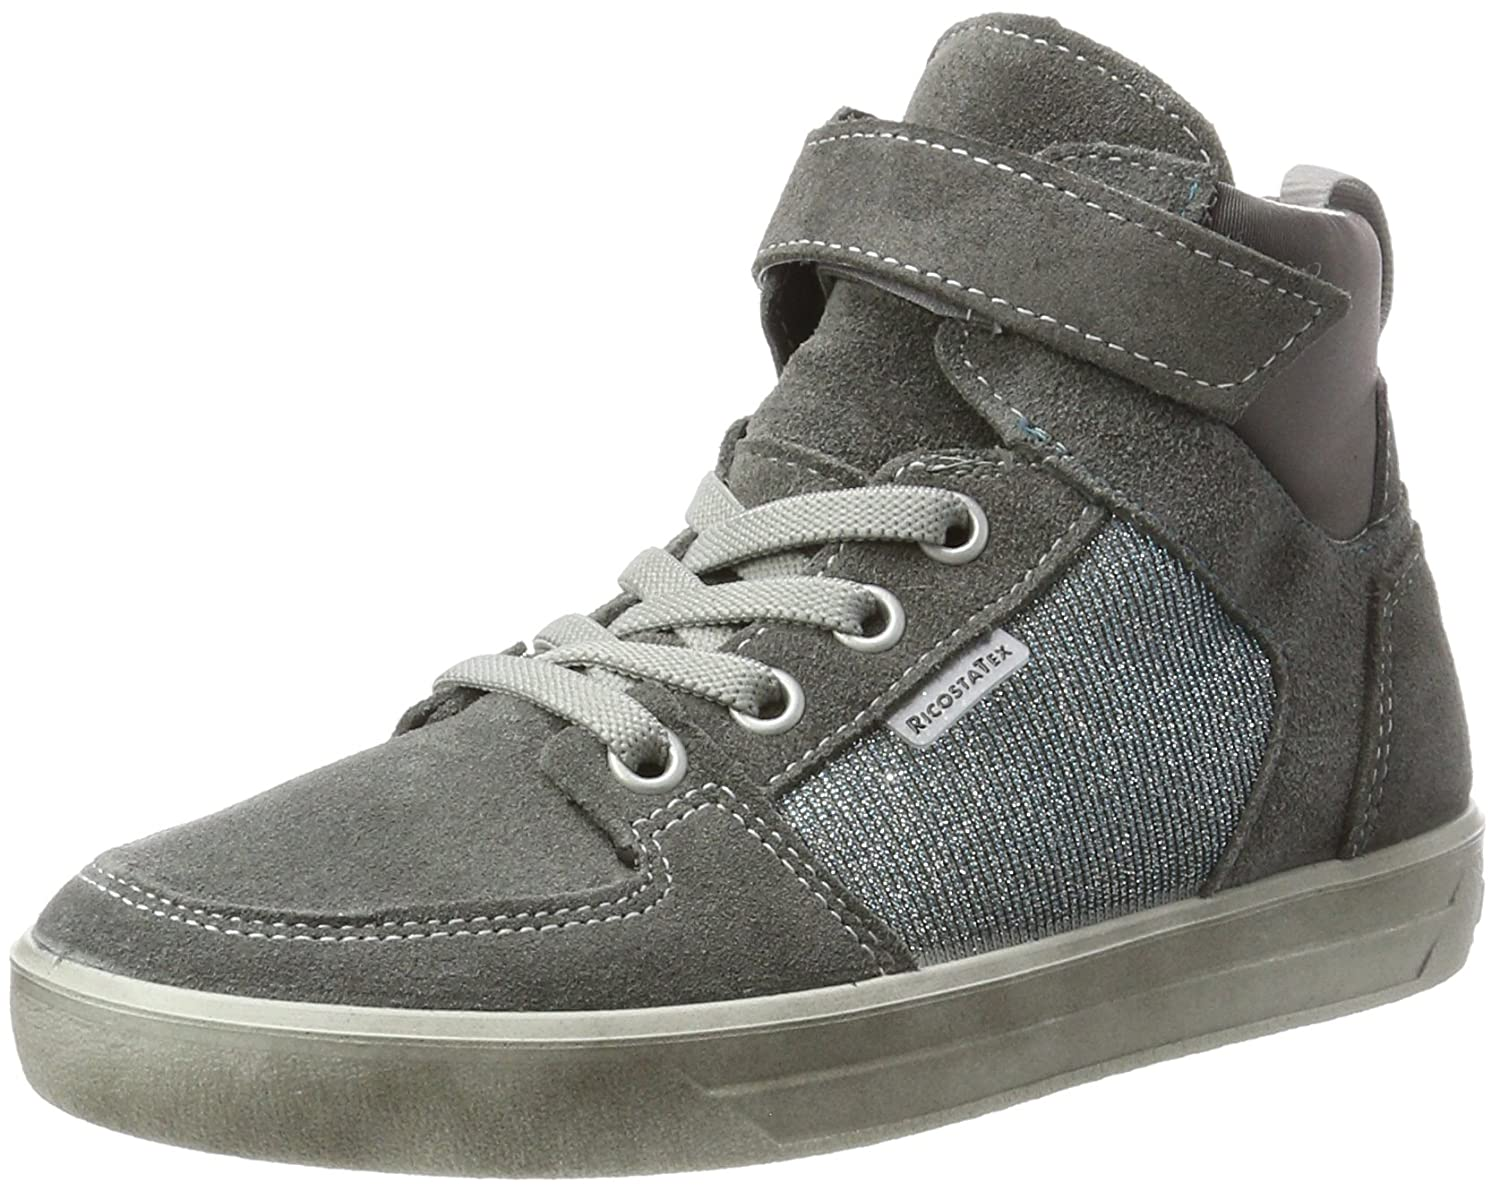 Ricosta Marle, Sneakers Hautes Fille, Gris (Patina/Himmer), 32 EU